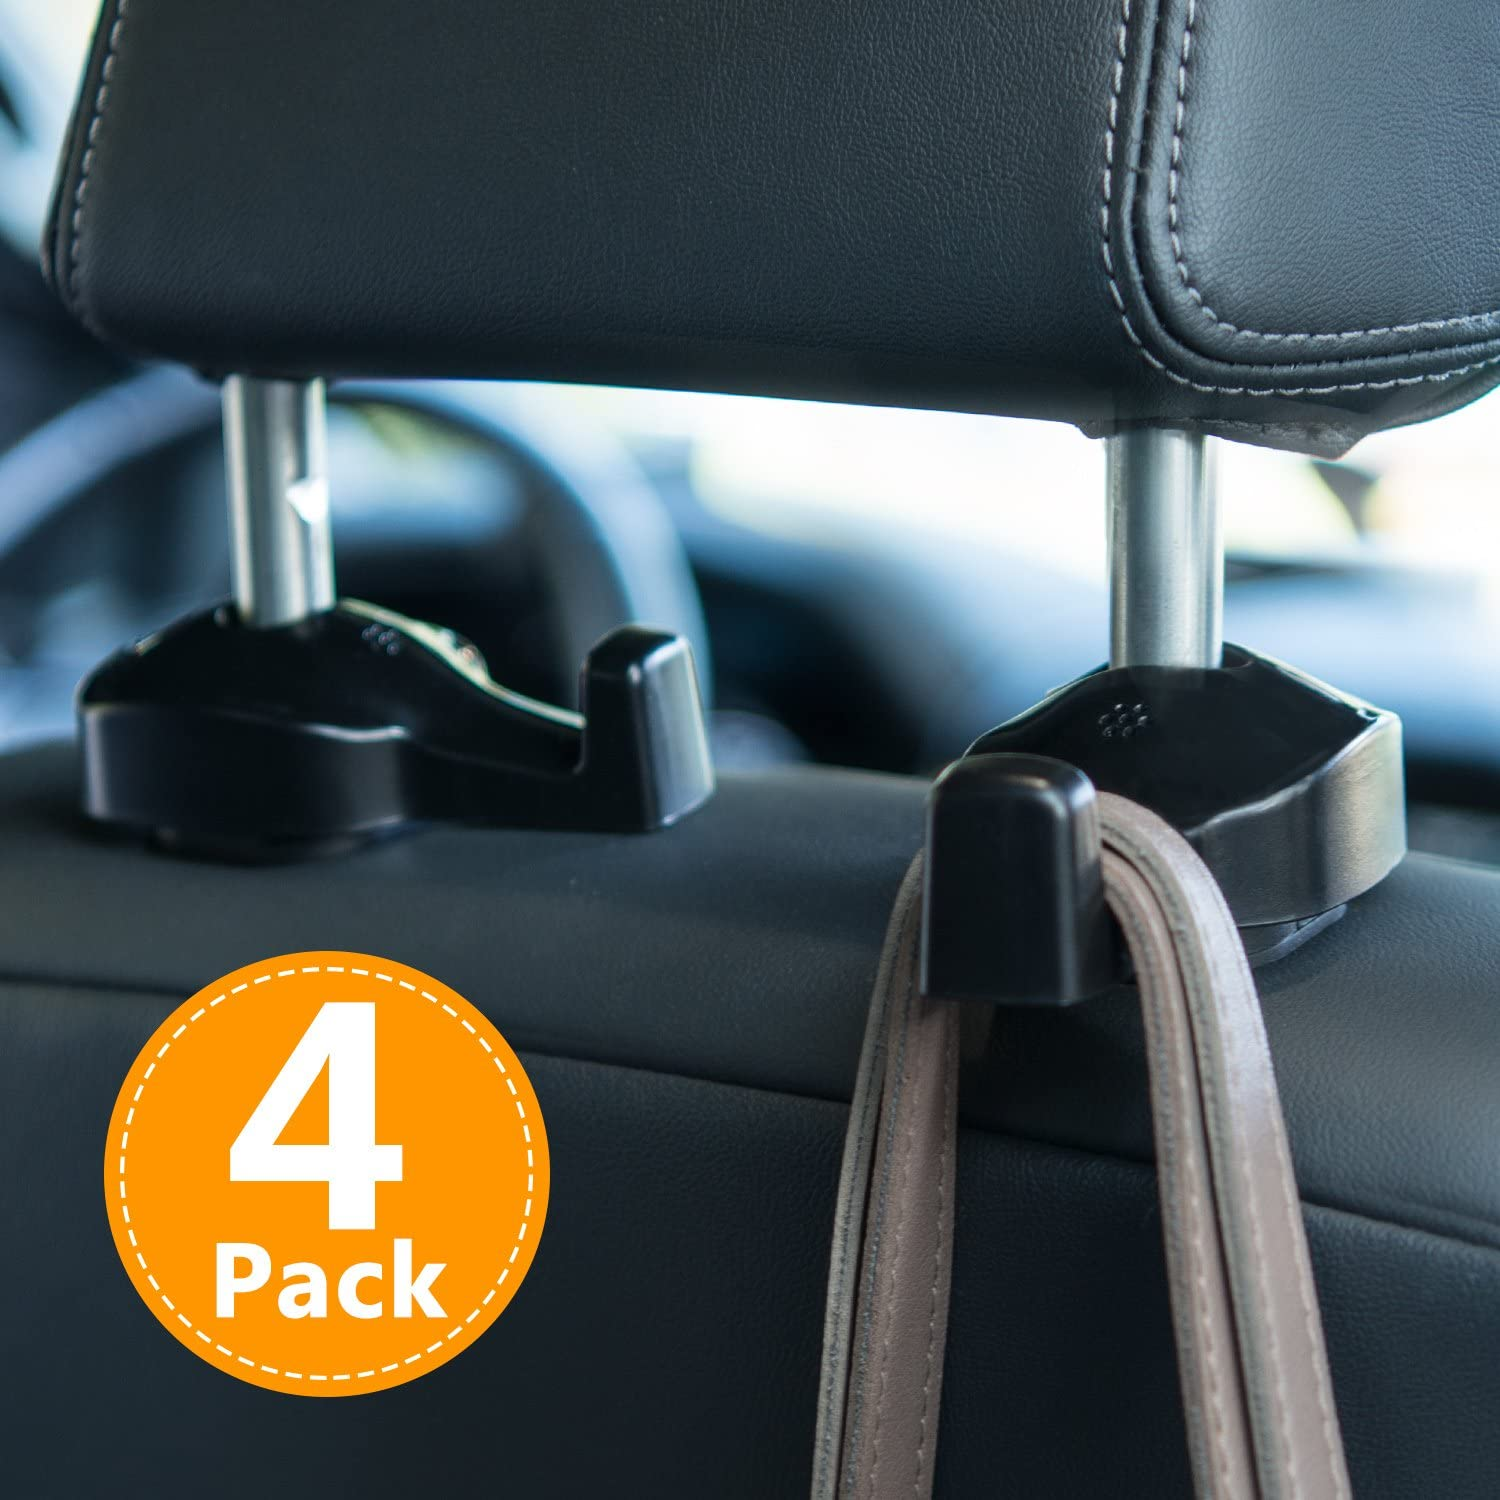 VTECHOLOGY Car Hooks 8 Pack Vehicle Hooks Purse Hooks Seat Headrest Hooks Backseat Headrest Hangers Storage for Bags Coats and Clothes Purses Grocery Bags